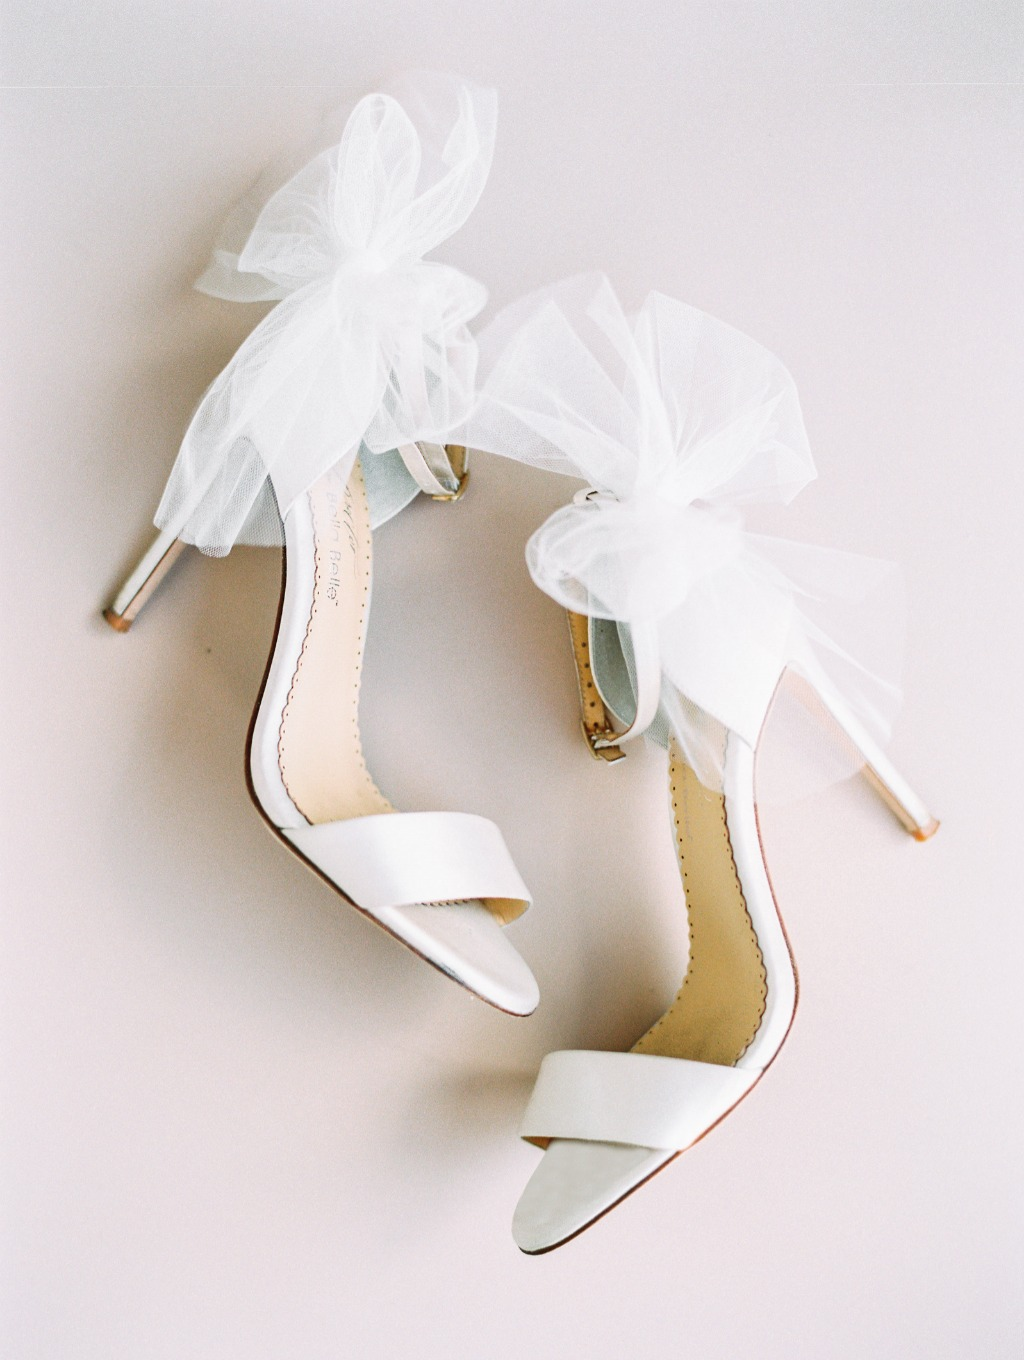 Fun, flirty and romantic, our Elise tulle heel designed by @joyproctor is one you can twirl the night away in! See more at @bellabelleshoes